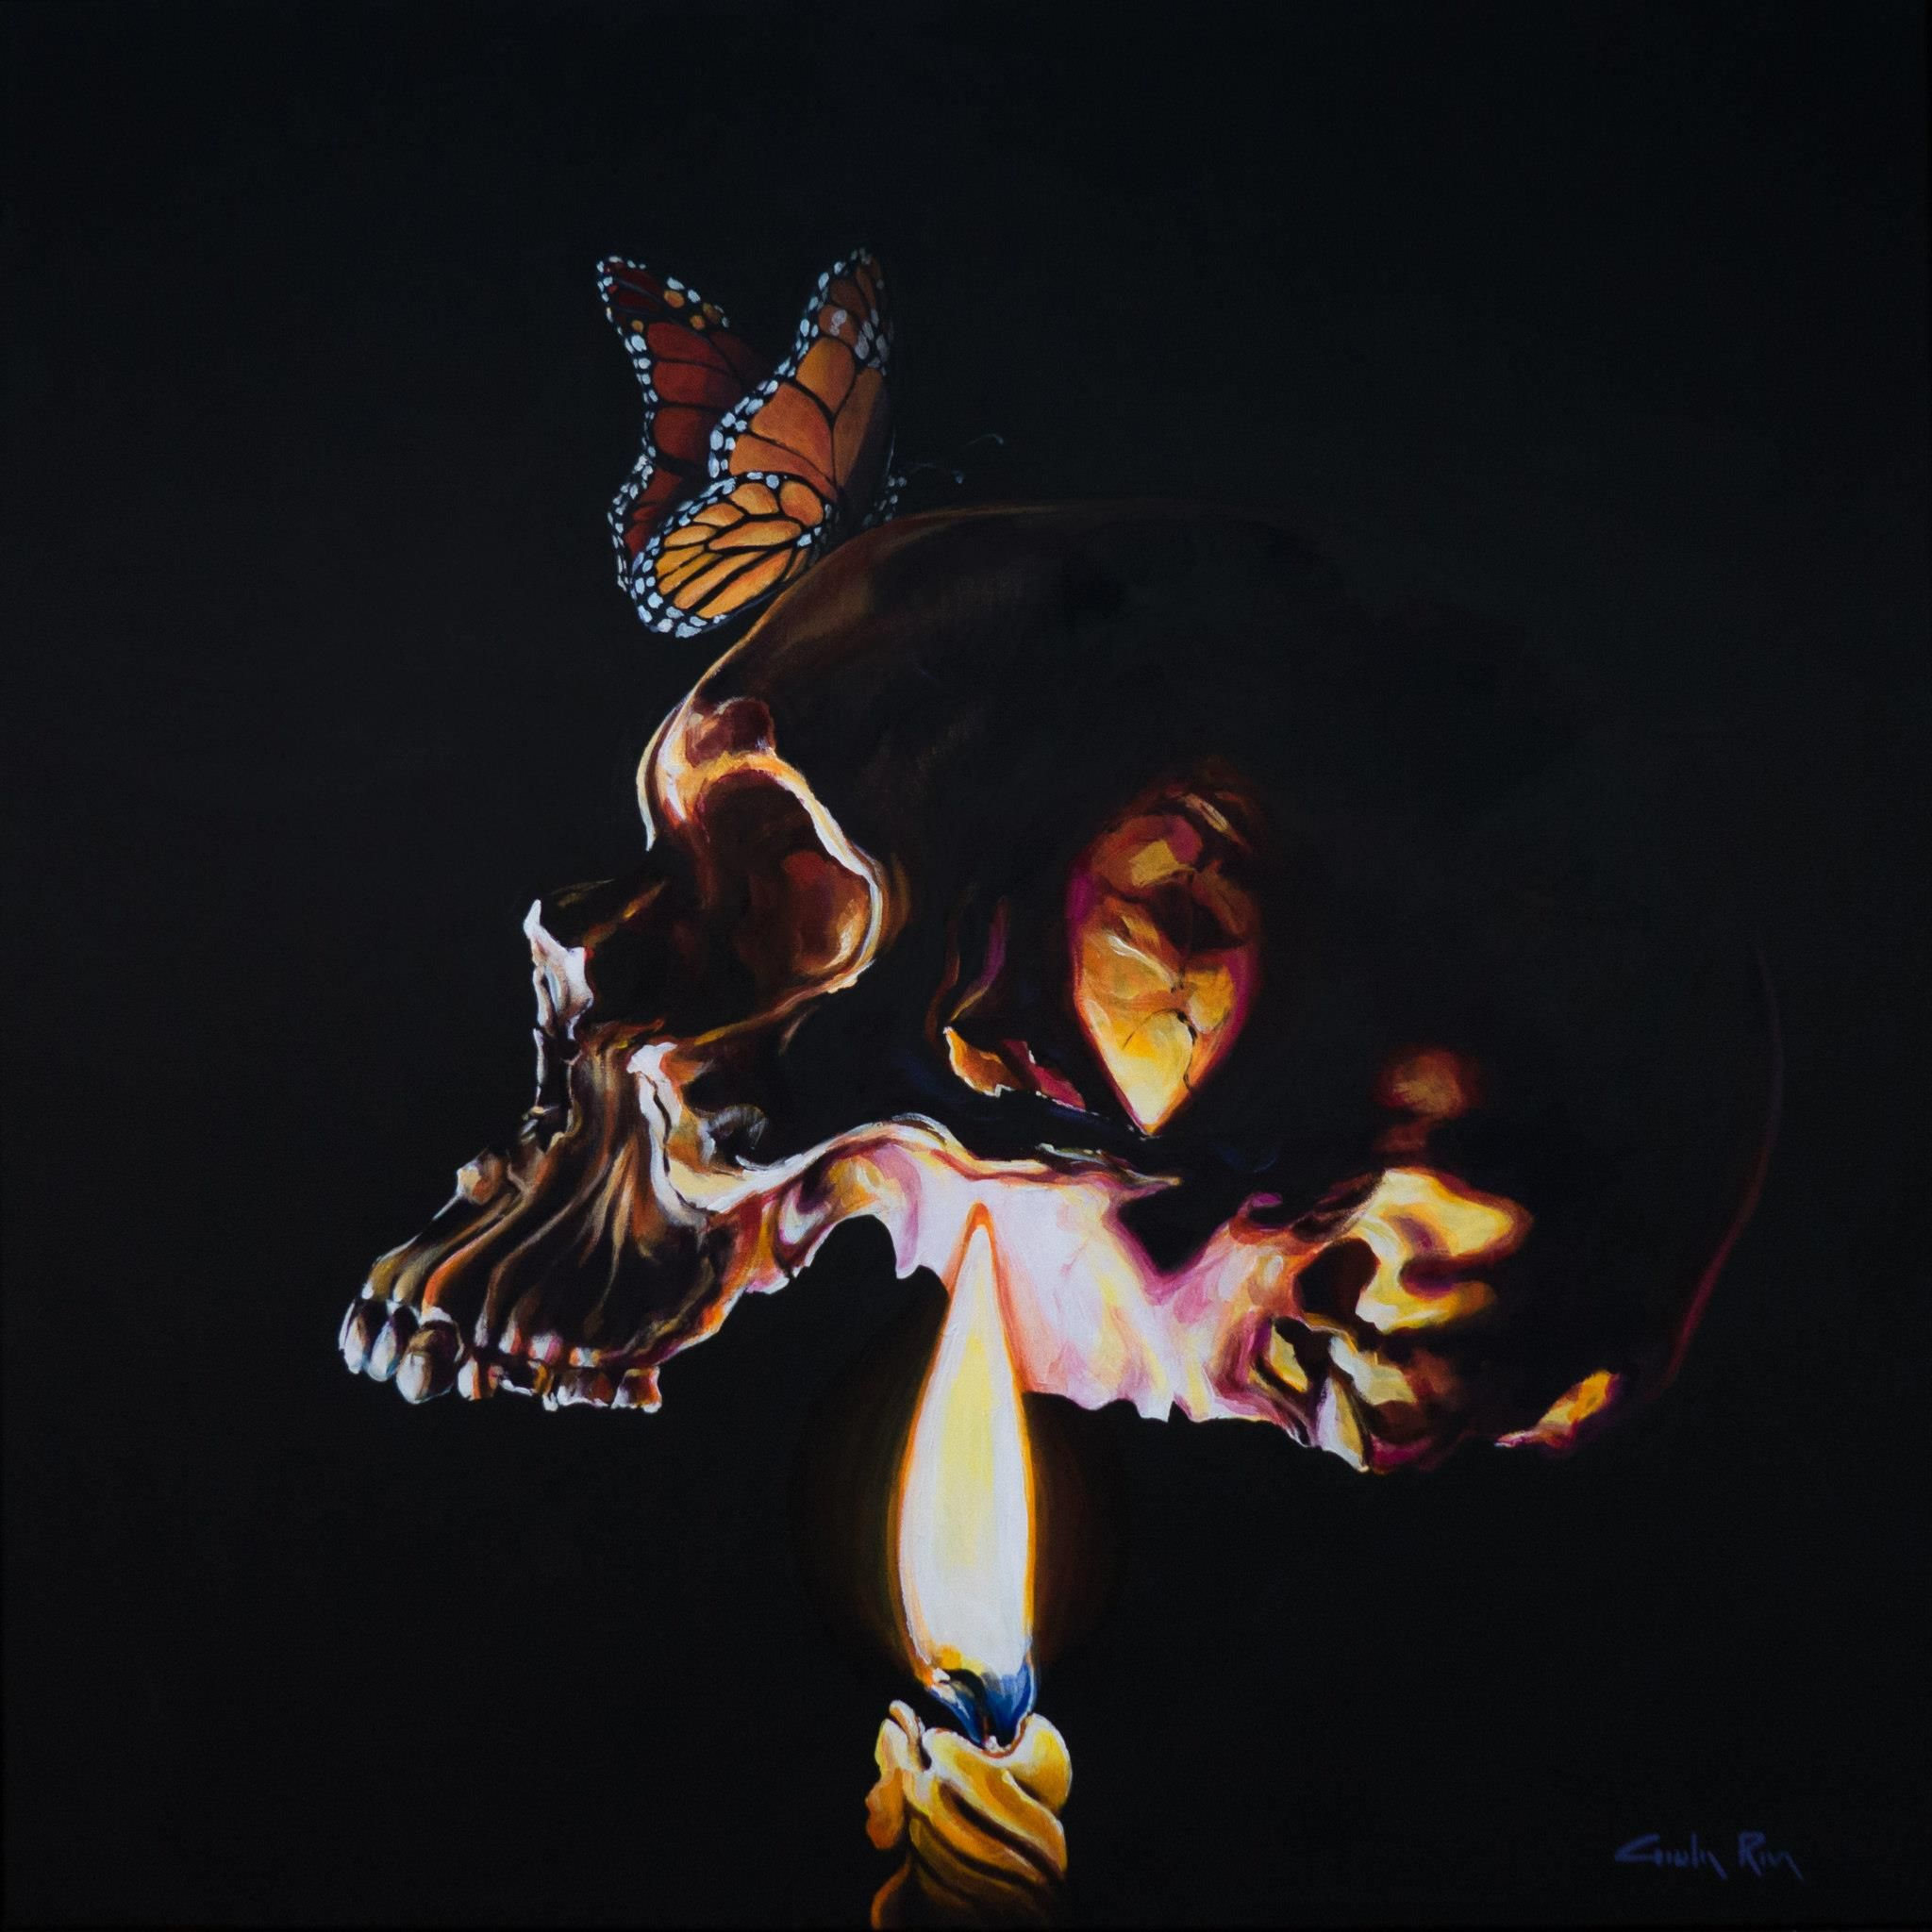 """Vite silenziose"" - ""Silent lives"" acrilico su tela 50x50 cm - acrilic on canvas 19x19"" #skull #stilllife #paint #acrilicpaint #paint #butterfly #candle #light #mistery #black"